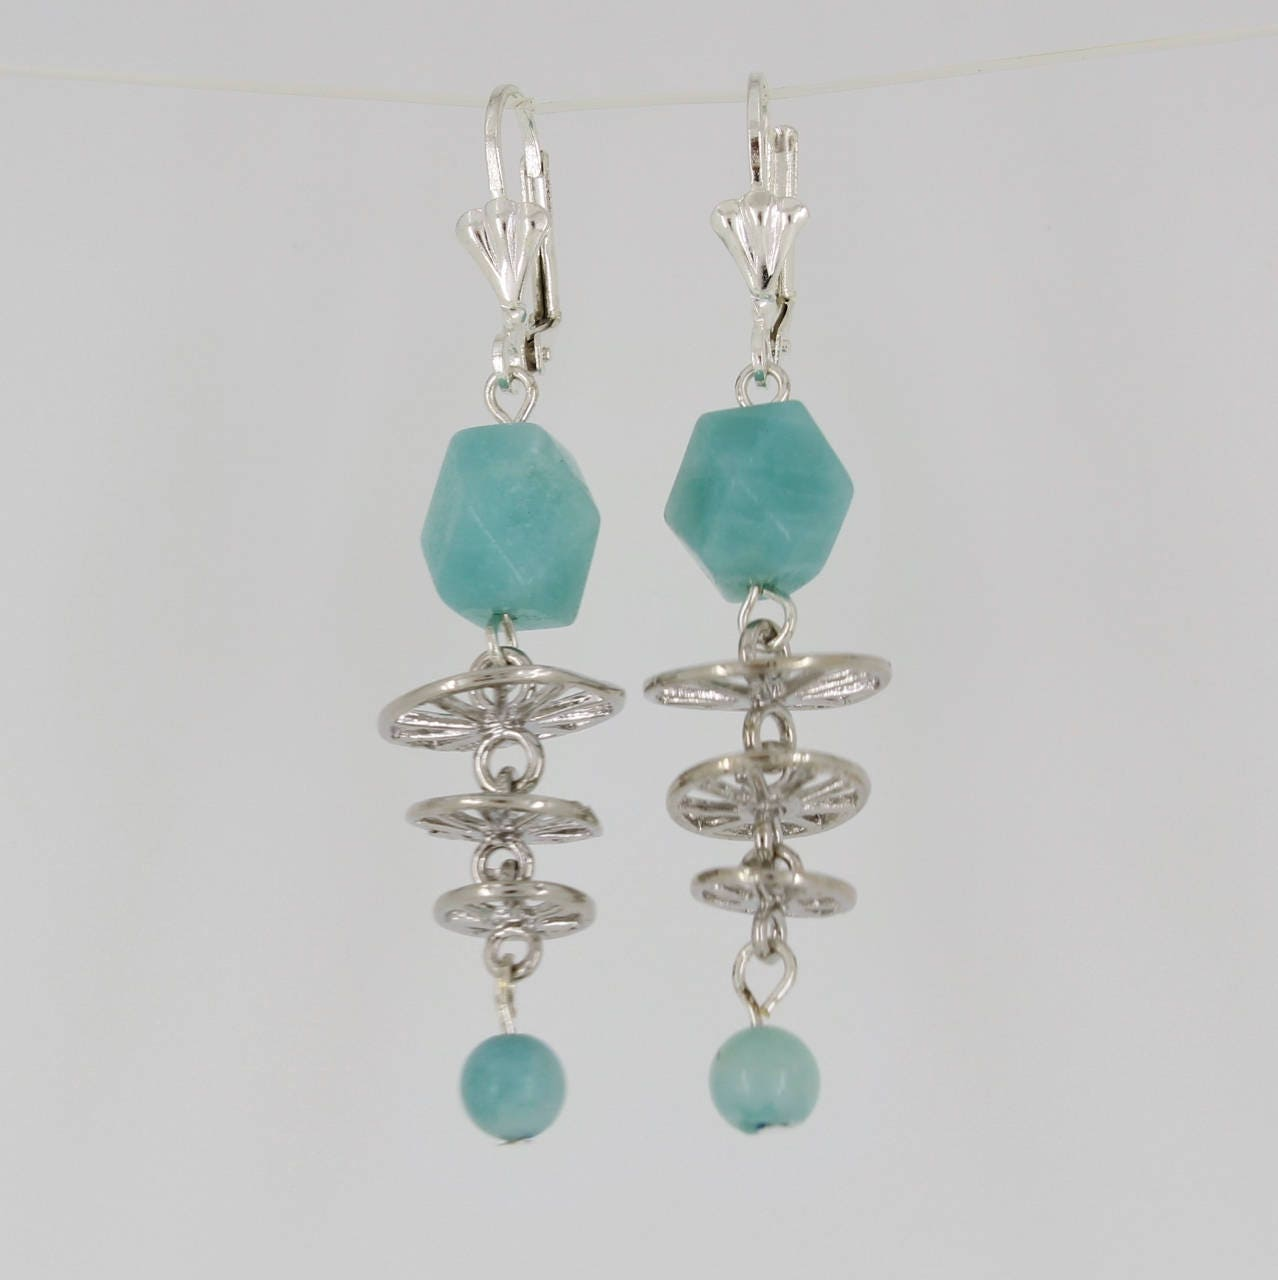 Baby,Blue,Amazonite,Earrings,Jewelry,dangle_earrings,gift_for_her,Amazonite_earrings,silver_leverbacks,unusual_jewelry,blue-green,aqua_blue,one_of_a_kind,newest_trends,sophisticated,classy_earrings,leverback earwires,amazonite beads,silver connectors